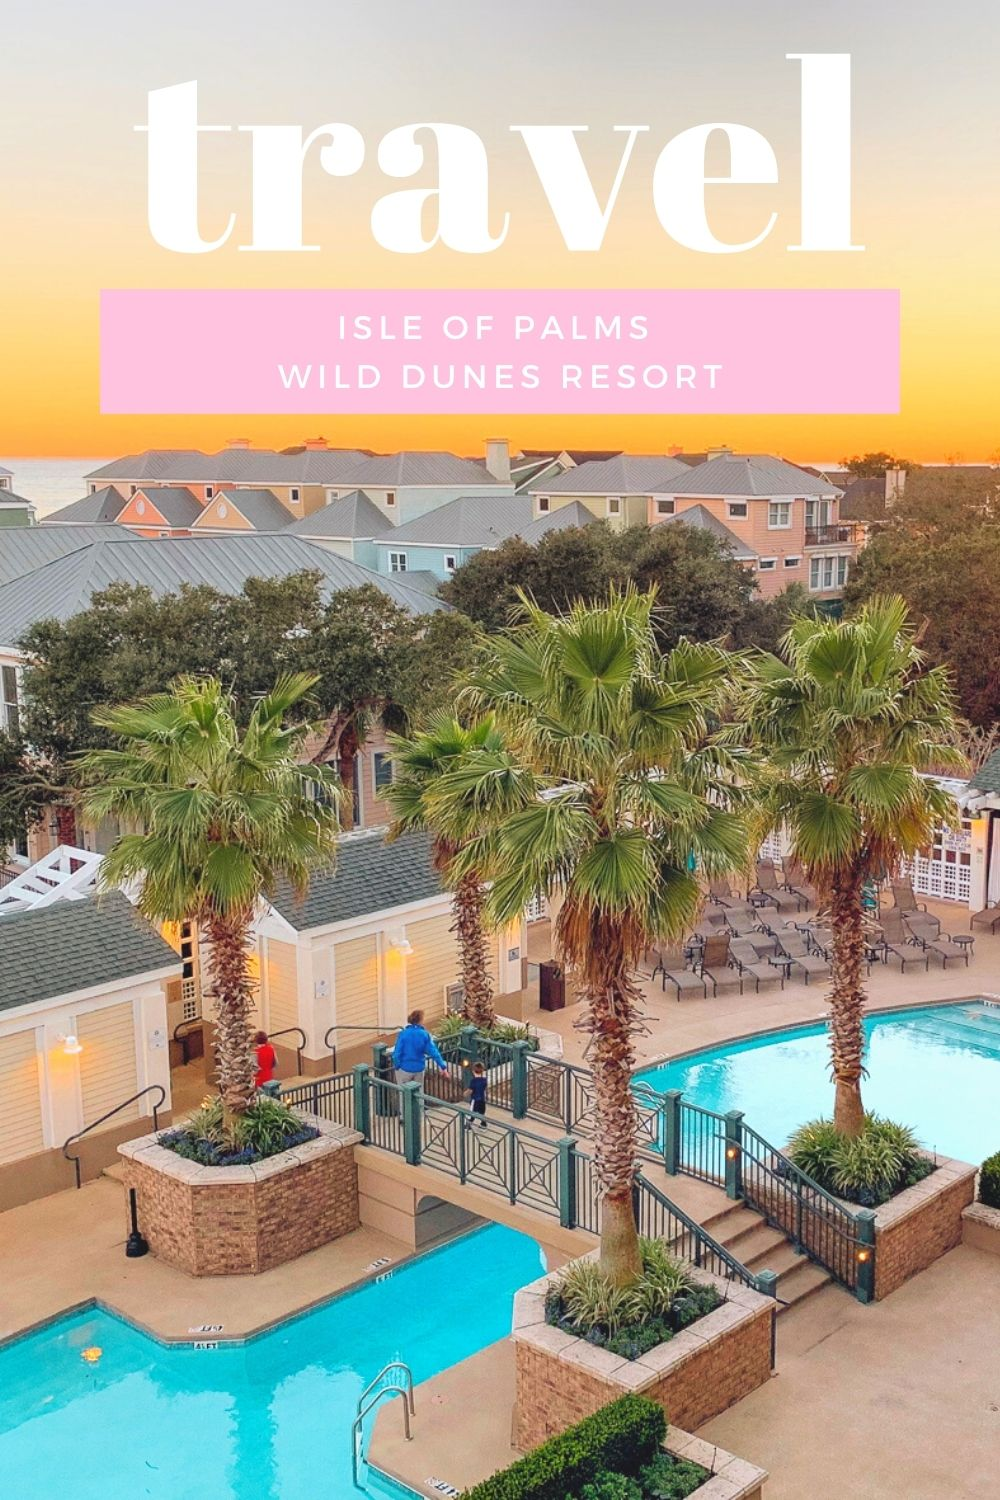 Best place to stay Isle of Palms South Carolina   Wild Dunes Resrot